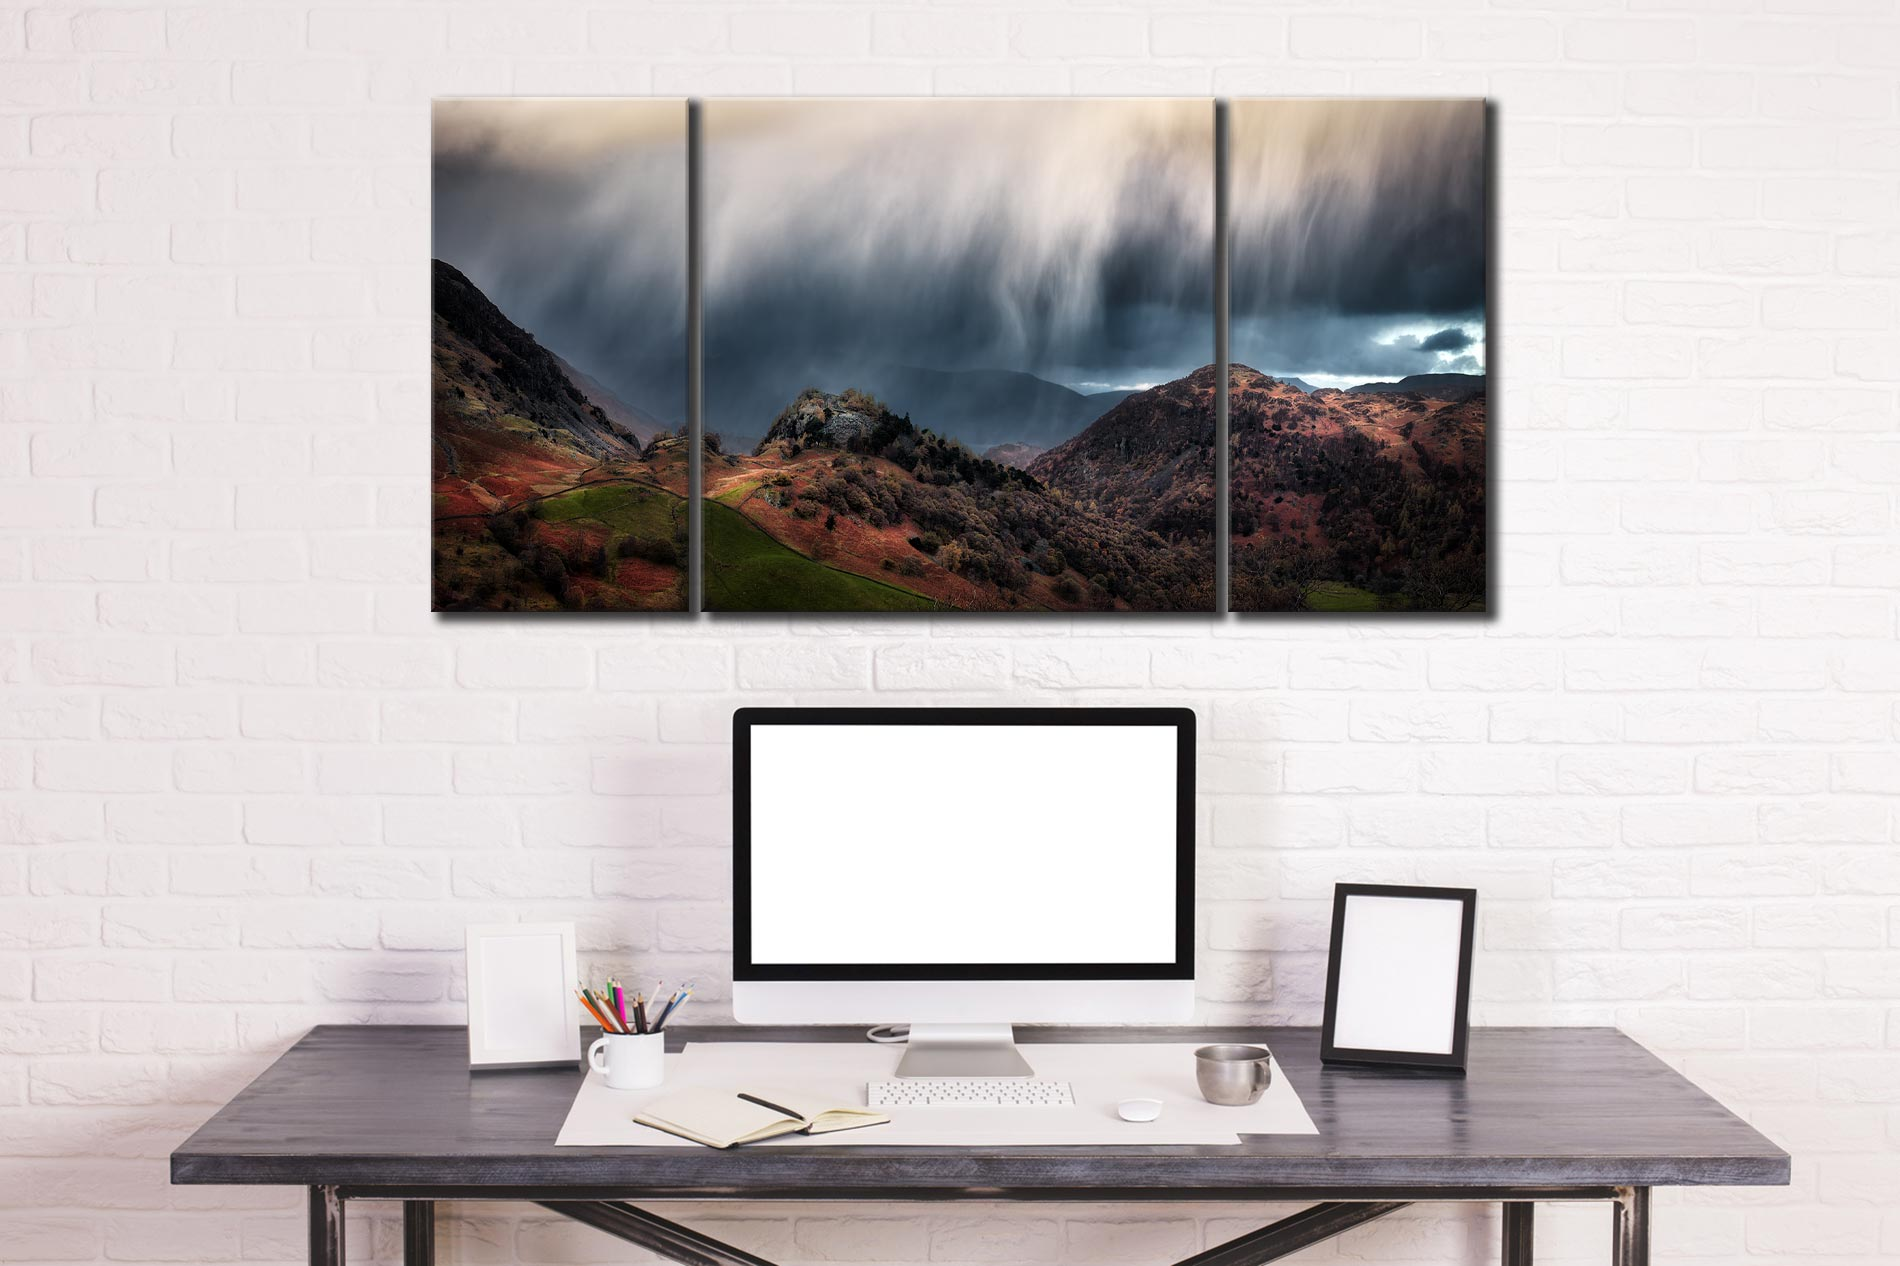 The Rains are a Coming - 3 Panel Wide Centre Canvas on Wall